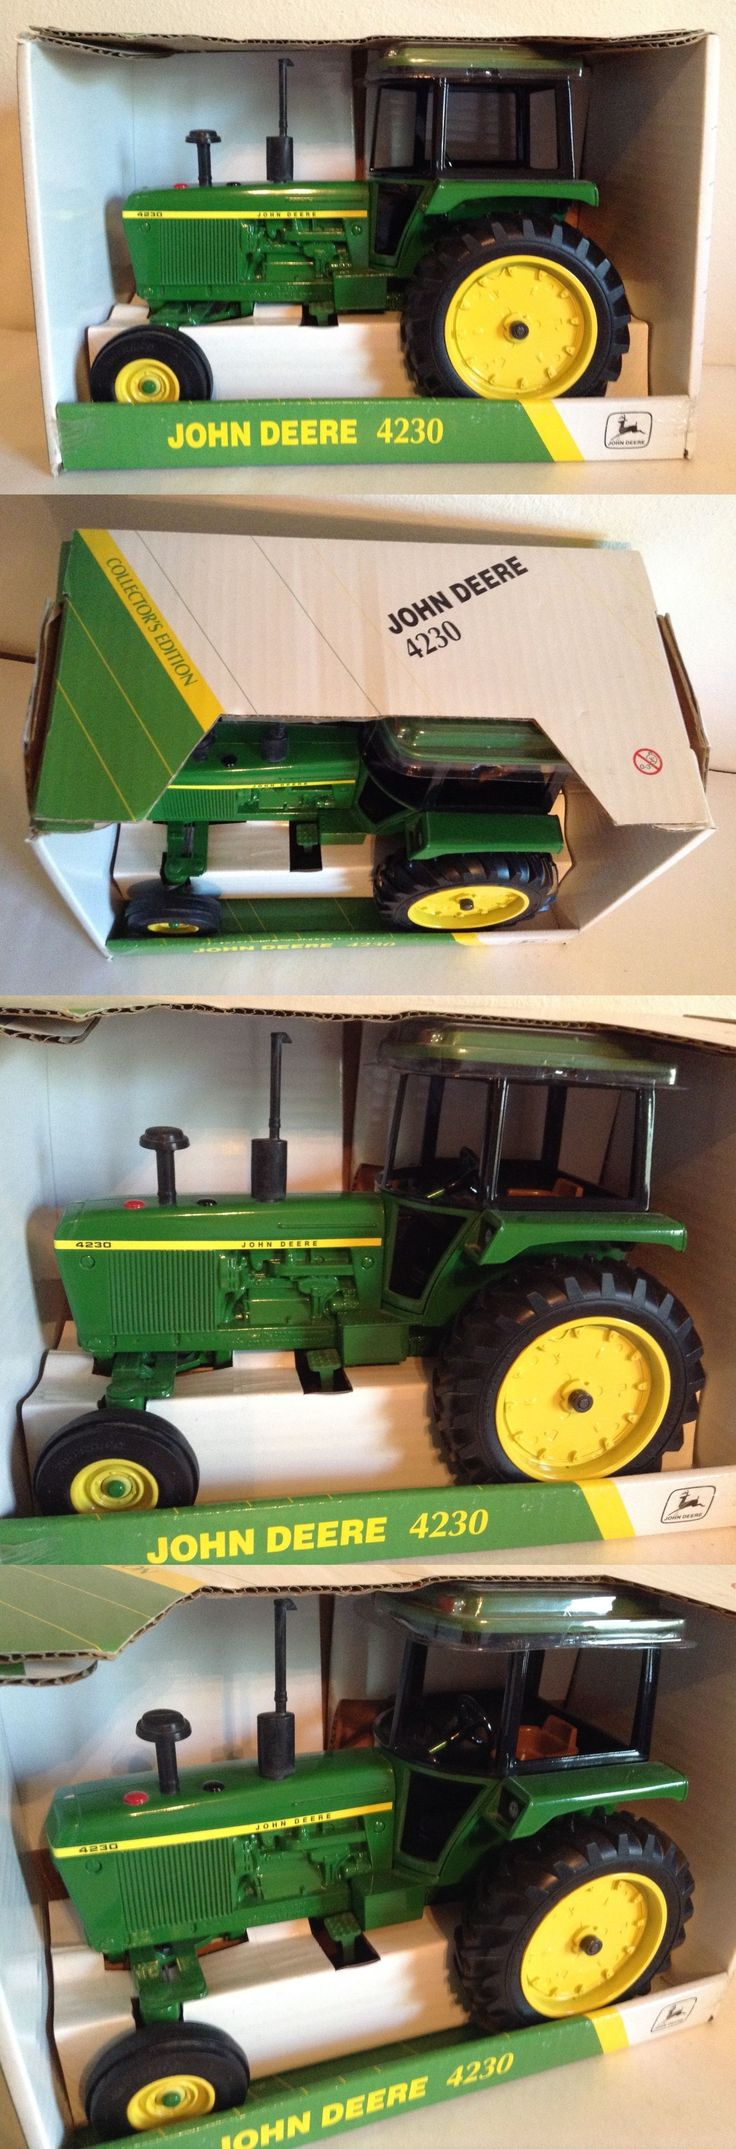 Vintage Manufacture 741: John Deere 4230 Row Crop Tractor Collector Edition Nib Ertl 1 16 Hard To Find! -> BUY IT NOW ONLY: $70 on eBay!